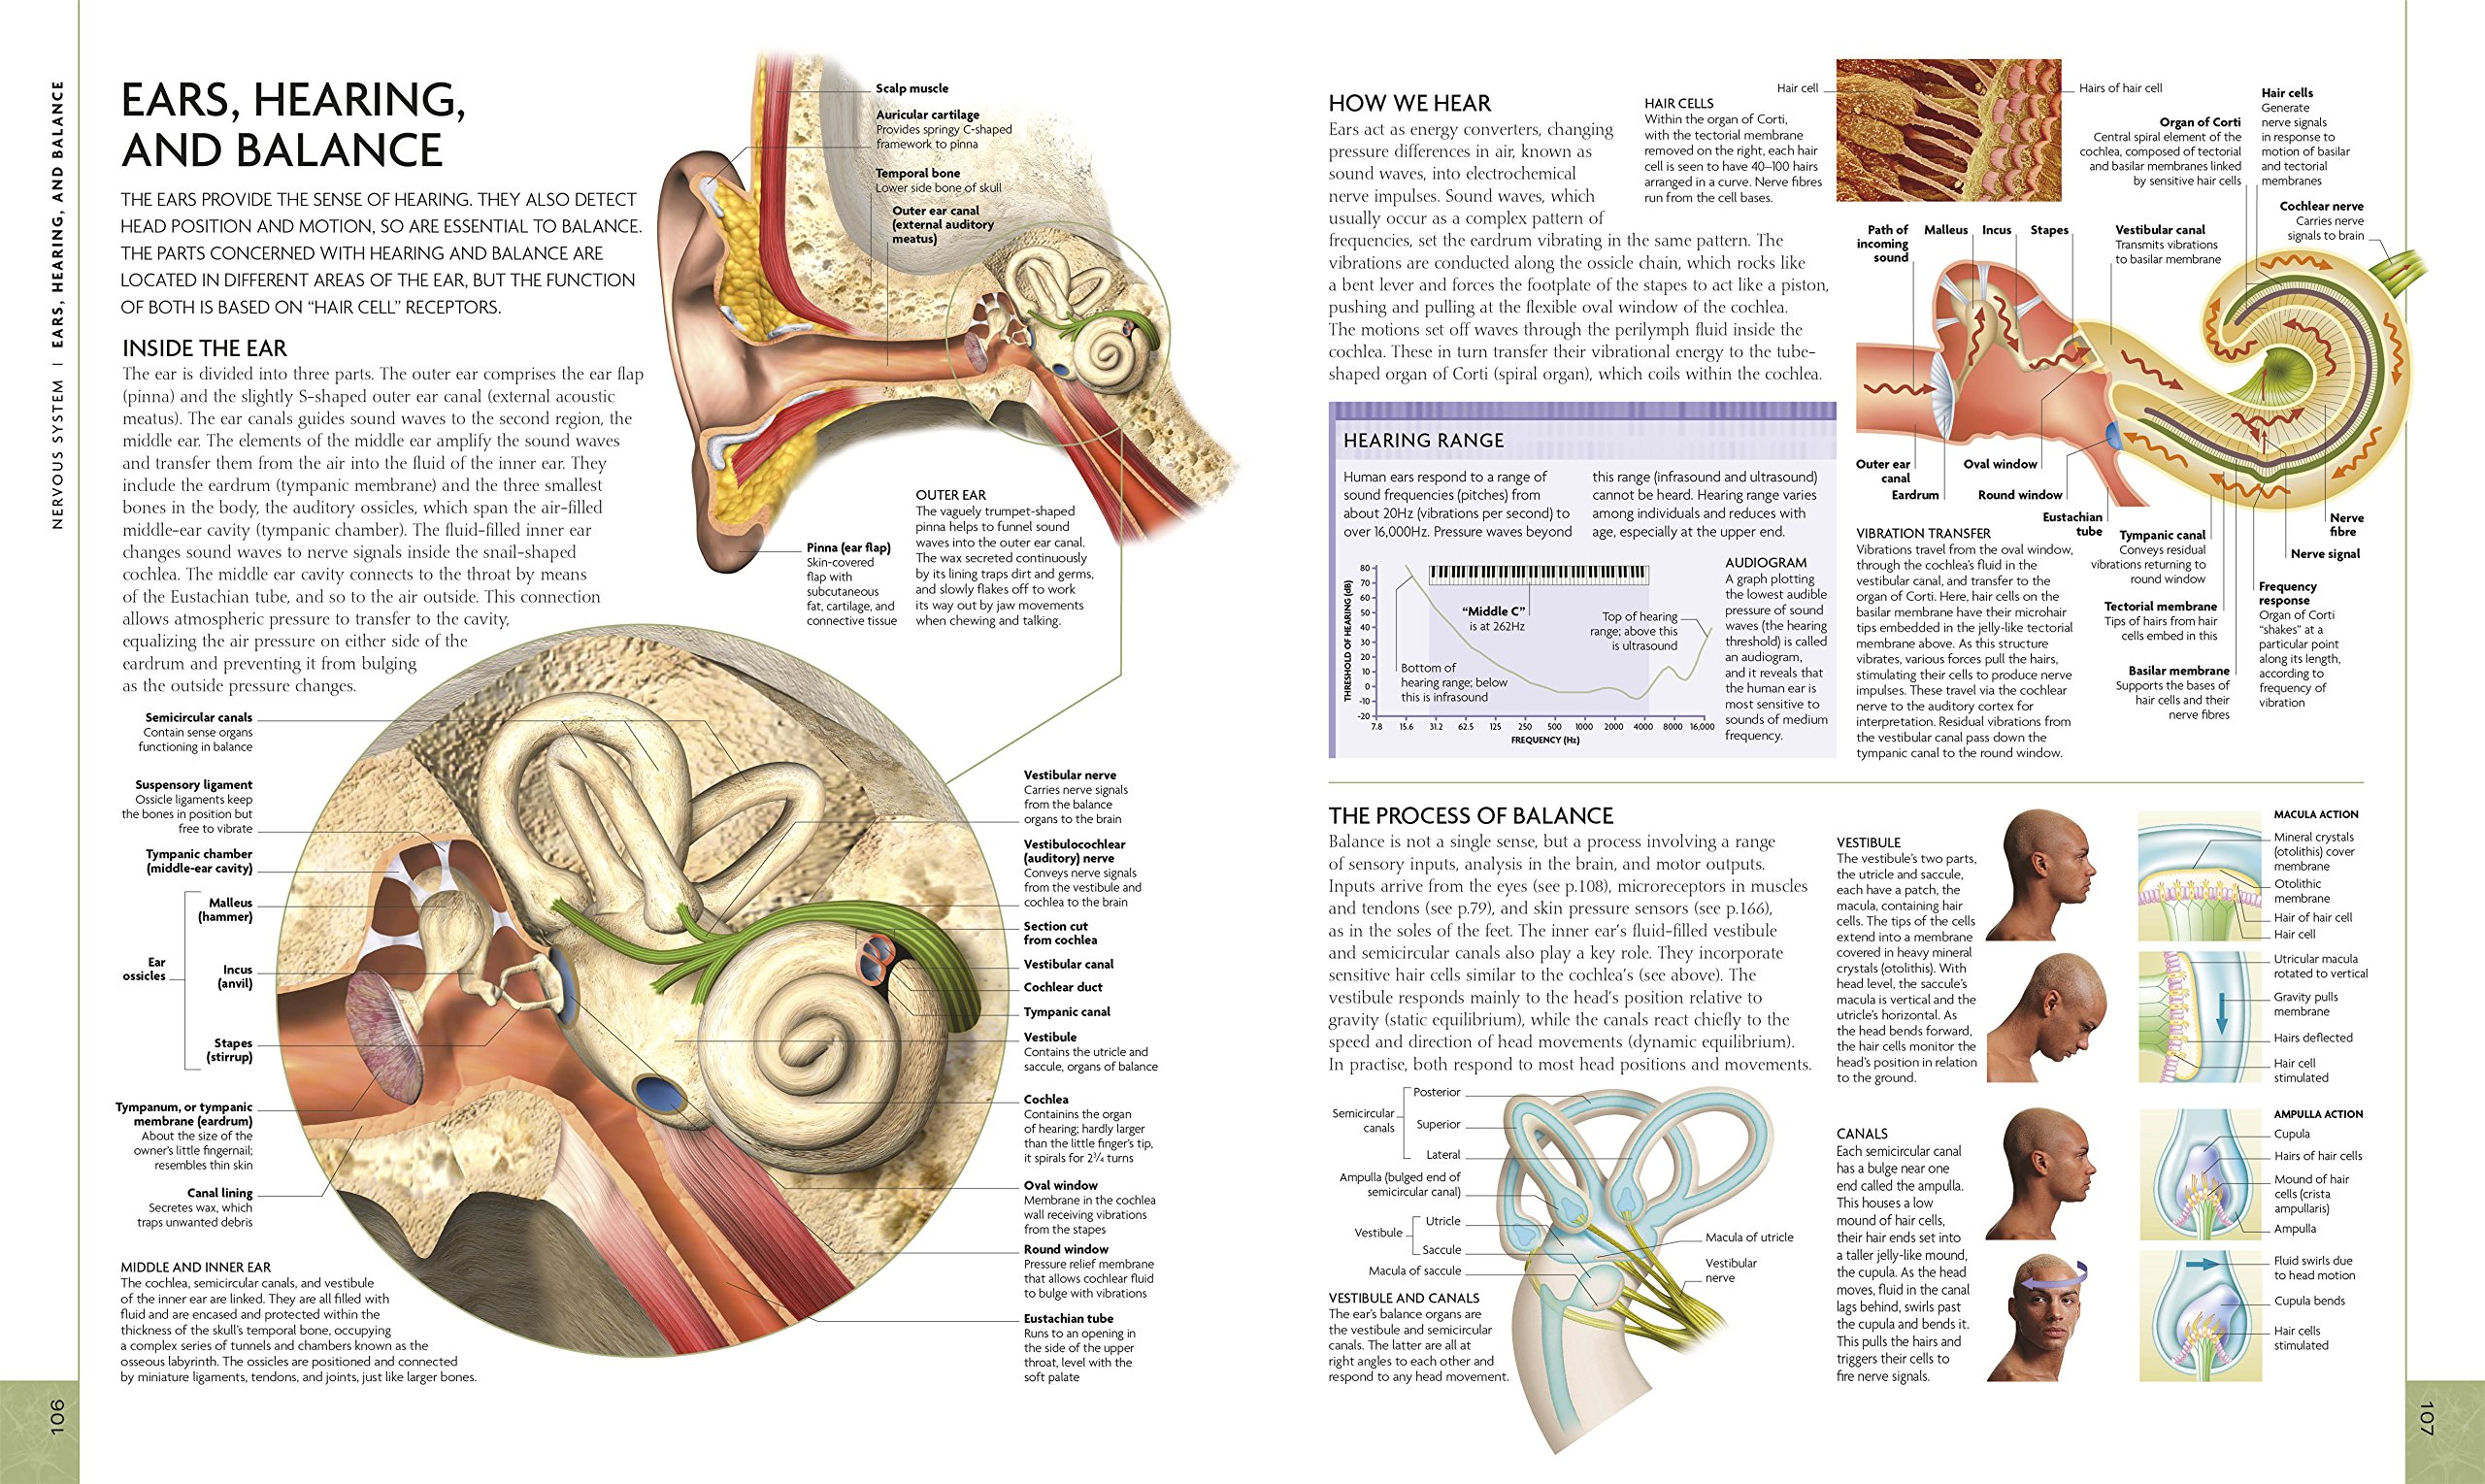 Buy The Human Body Book An Illustrated Guide To Its Structure 3d Plant Cell Diagram From Textbook Image Gallery Function And Disorders Dk Medical Reference Online At Low Prices In India